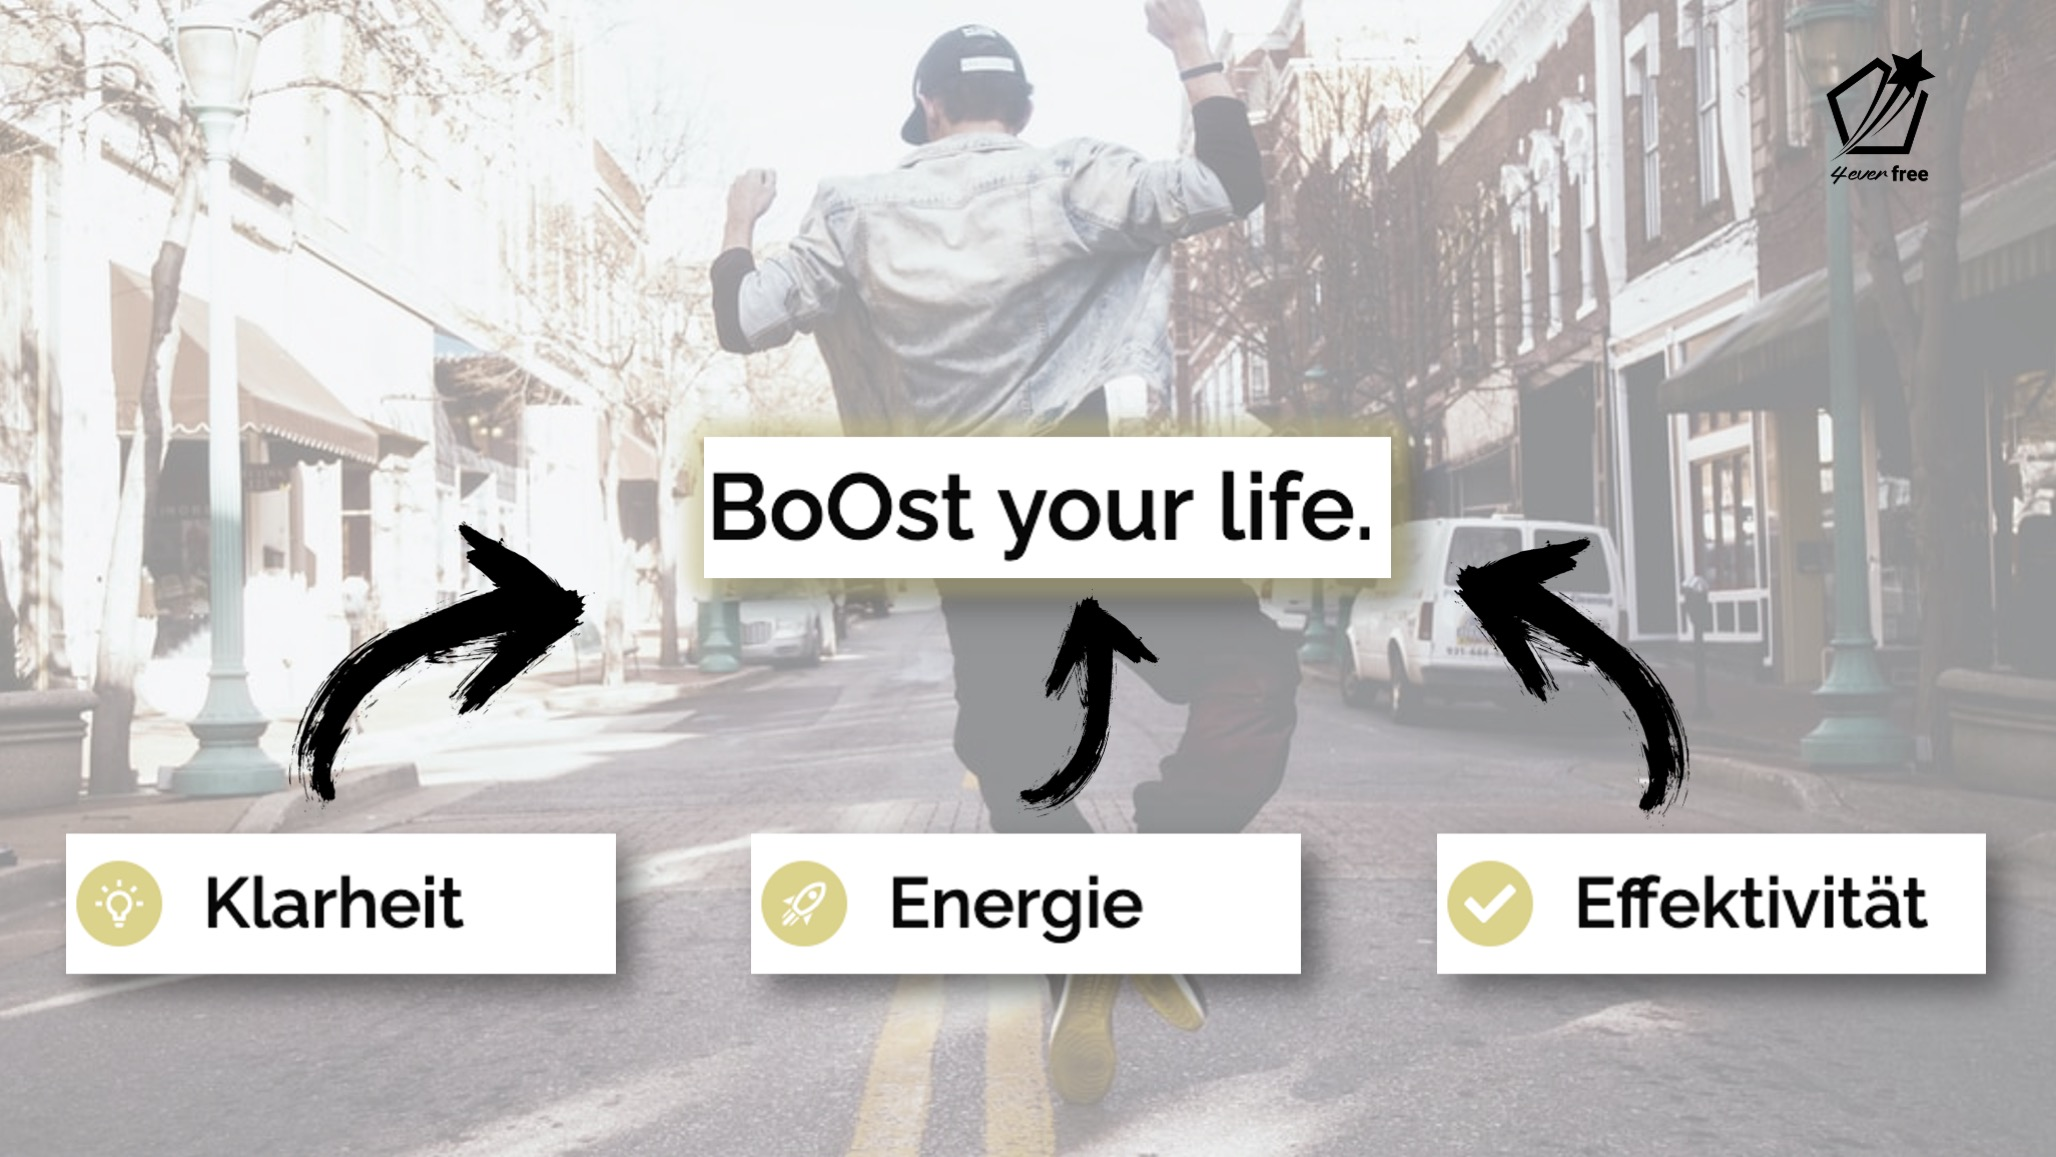 4everfree - BoOst Map